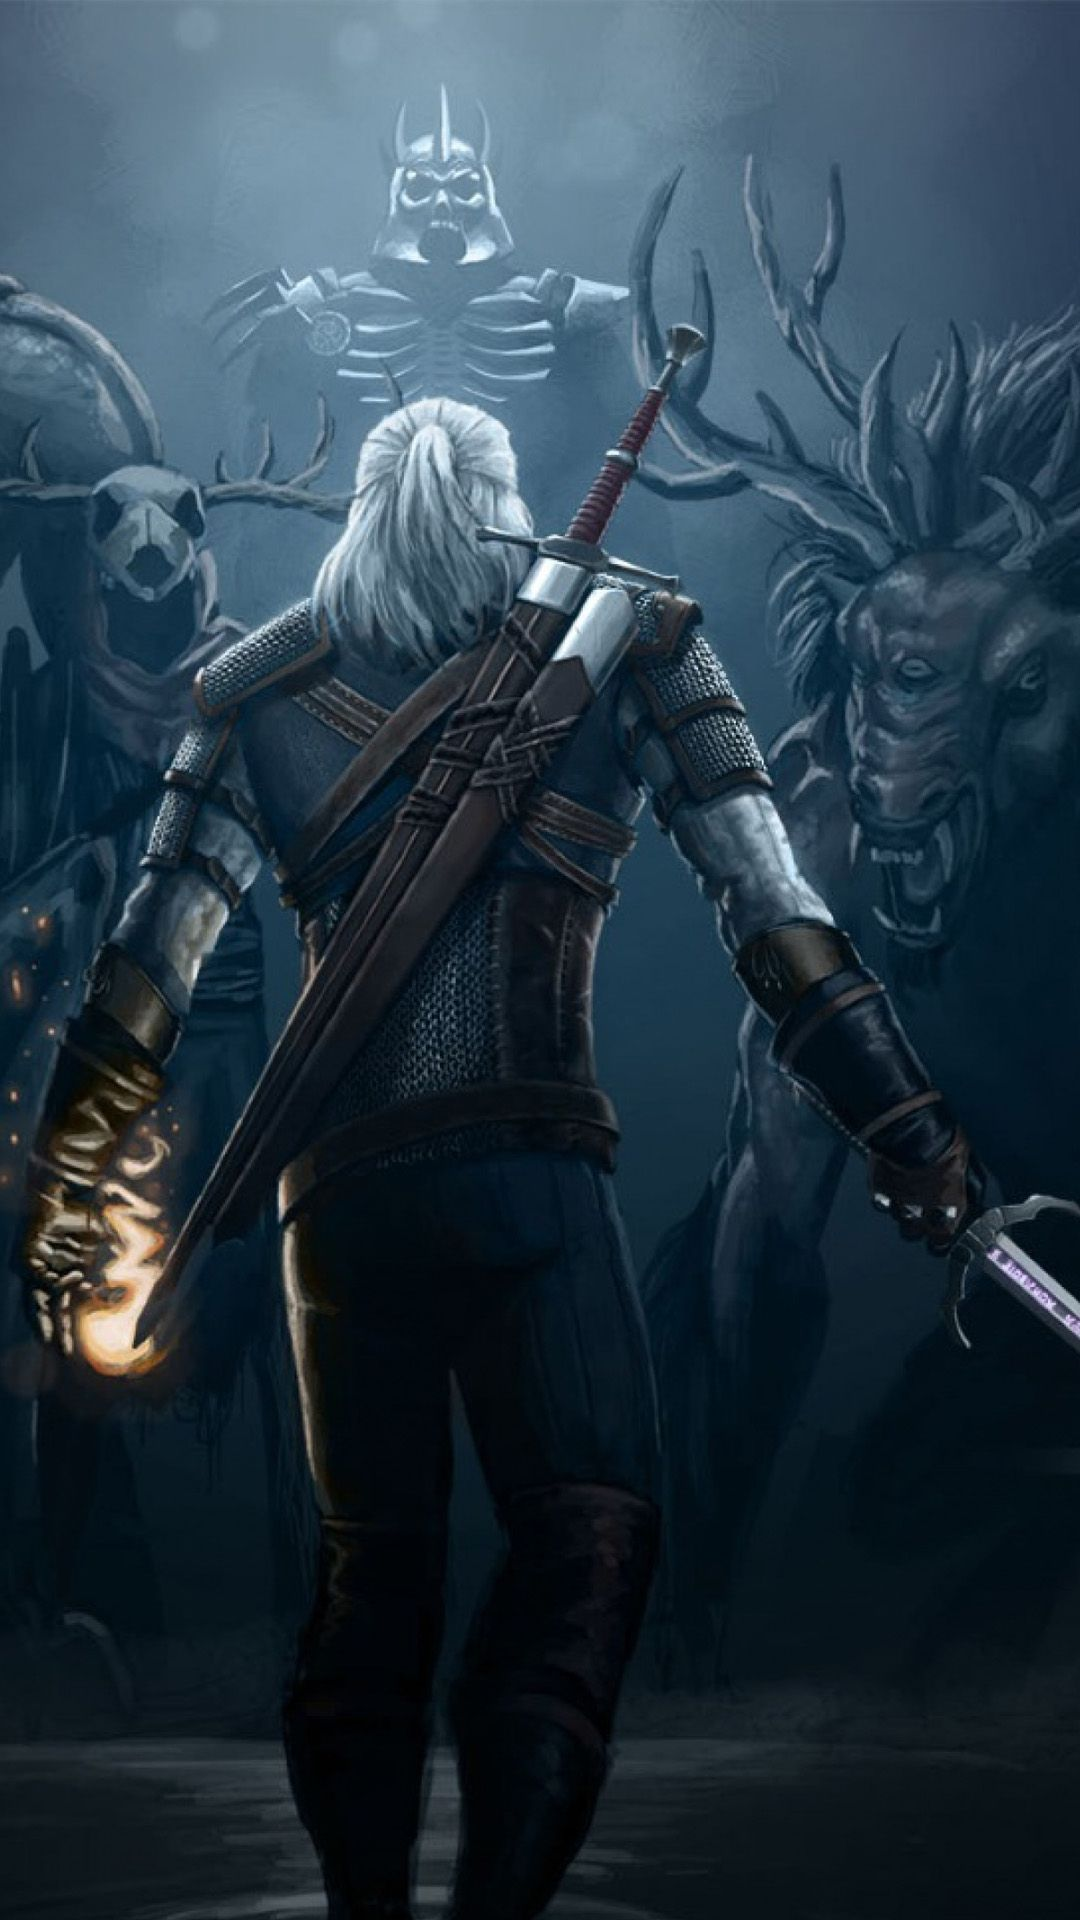 The Witcher 3 Wallpaper 1080p » Hupages » Download Iphone